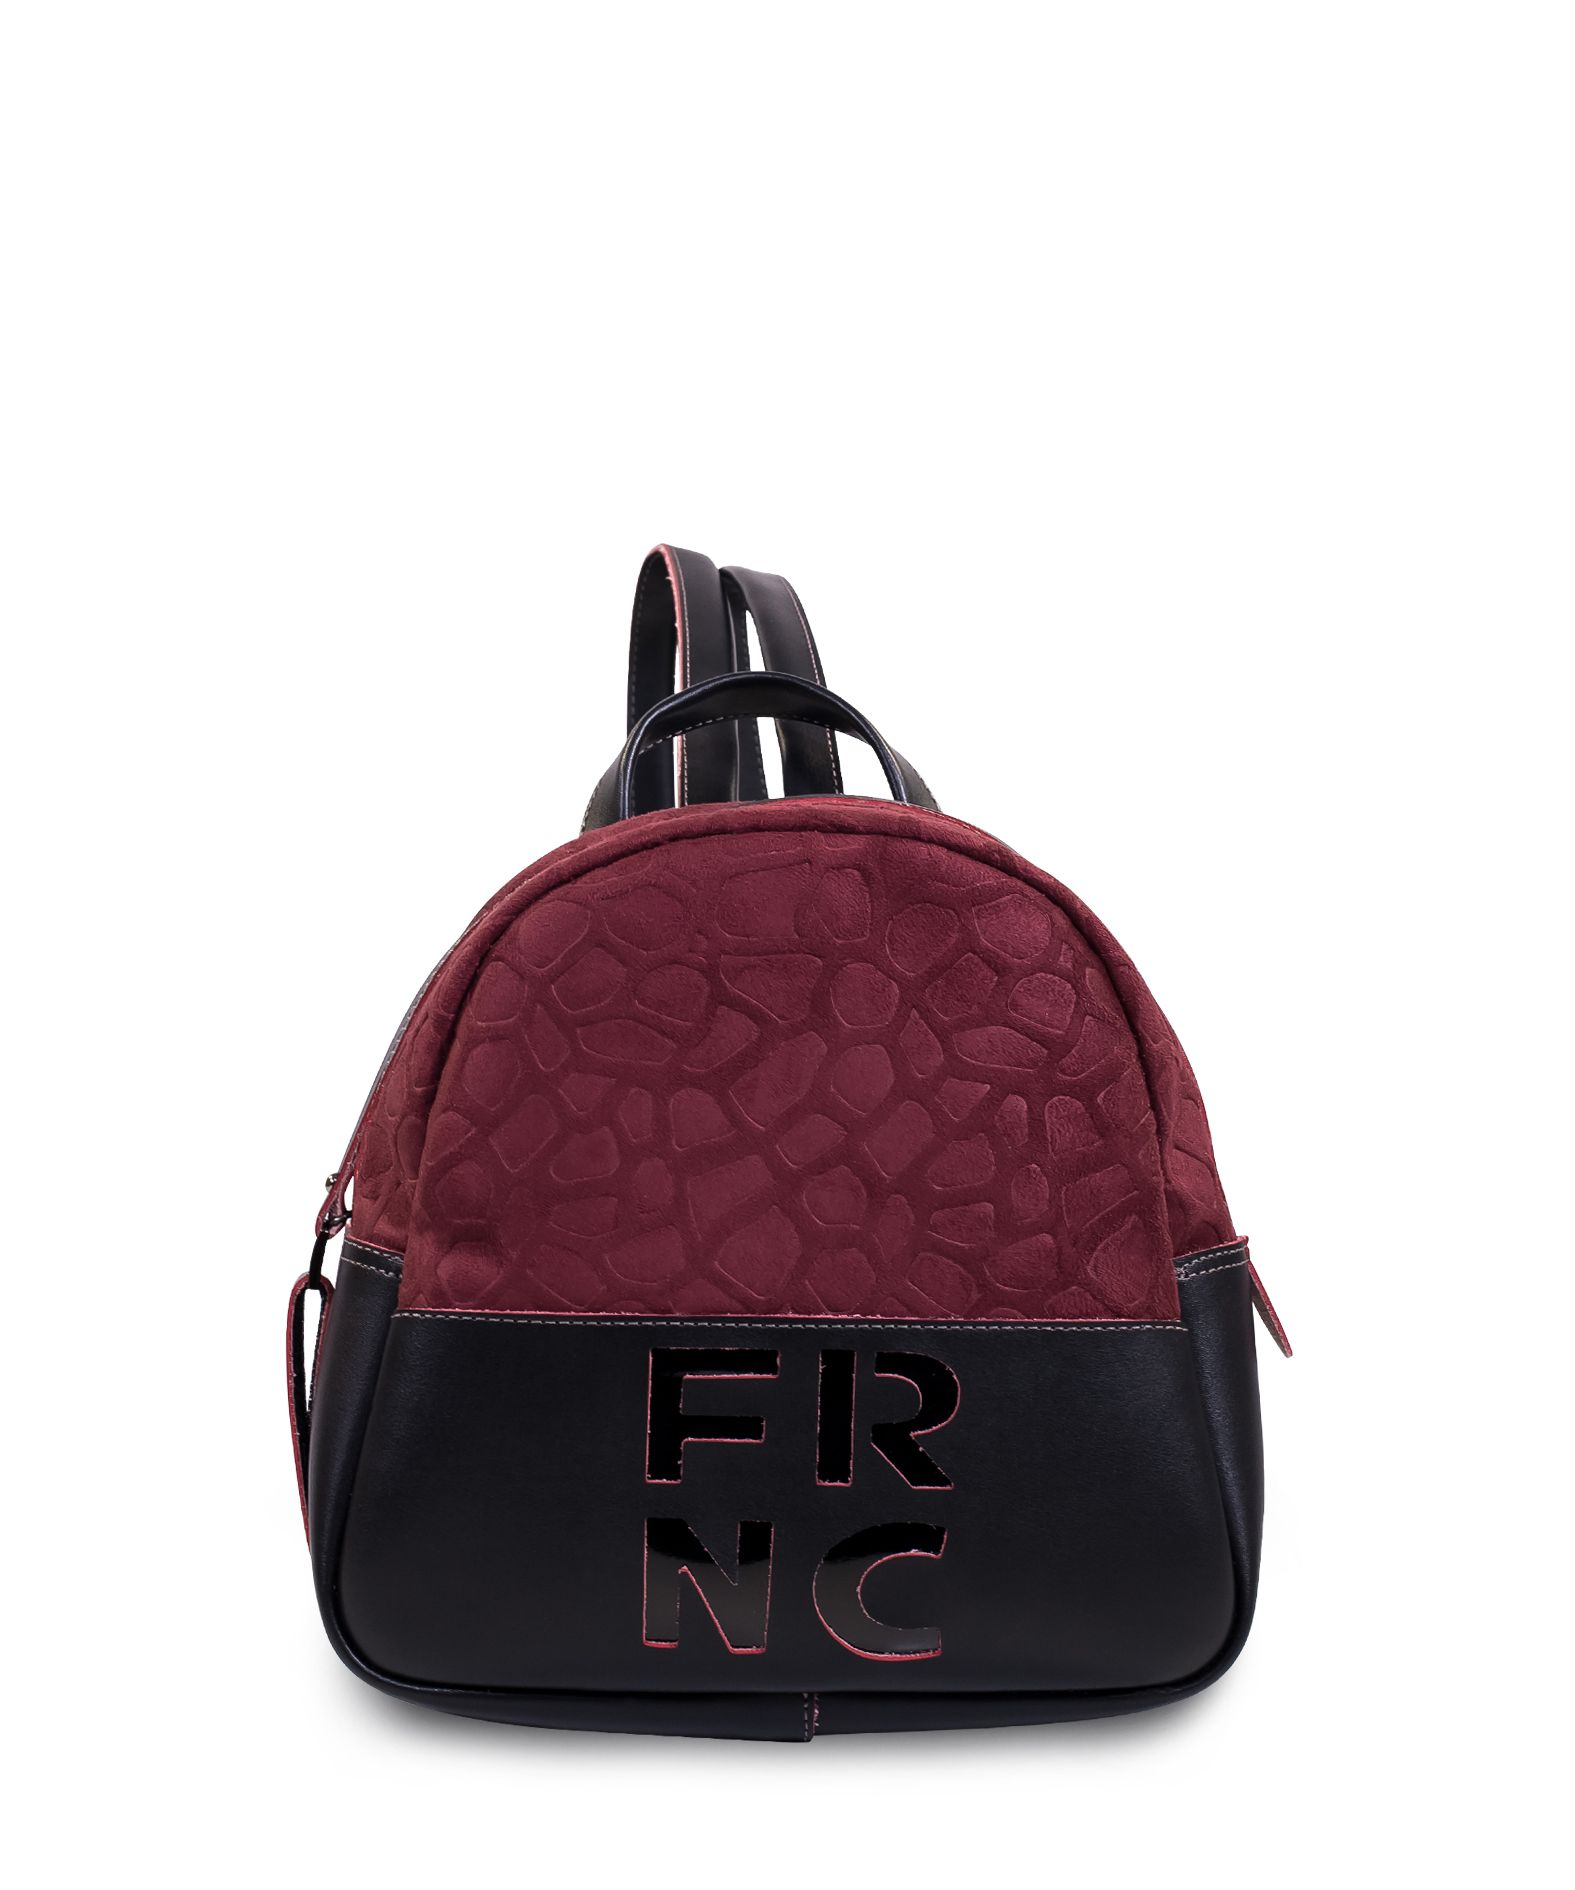 FRNC medium backpack for office styles and more